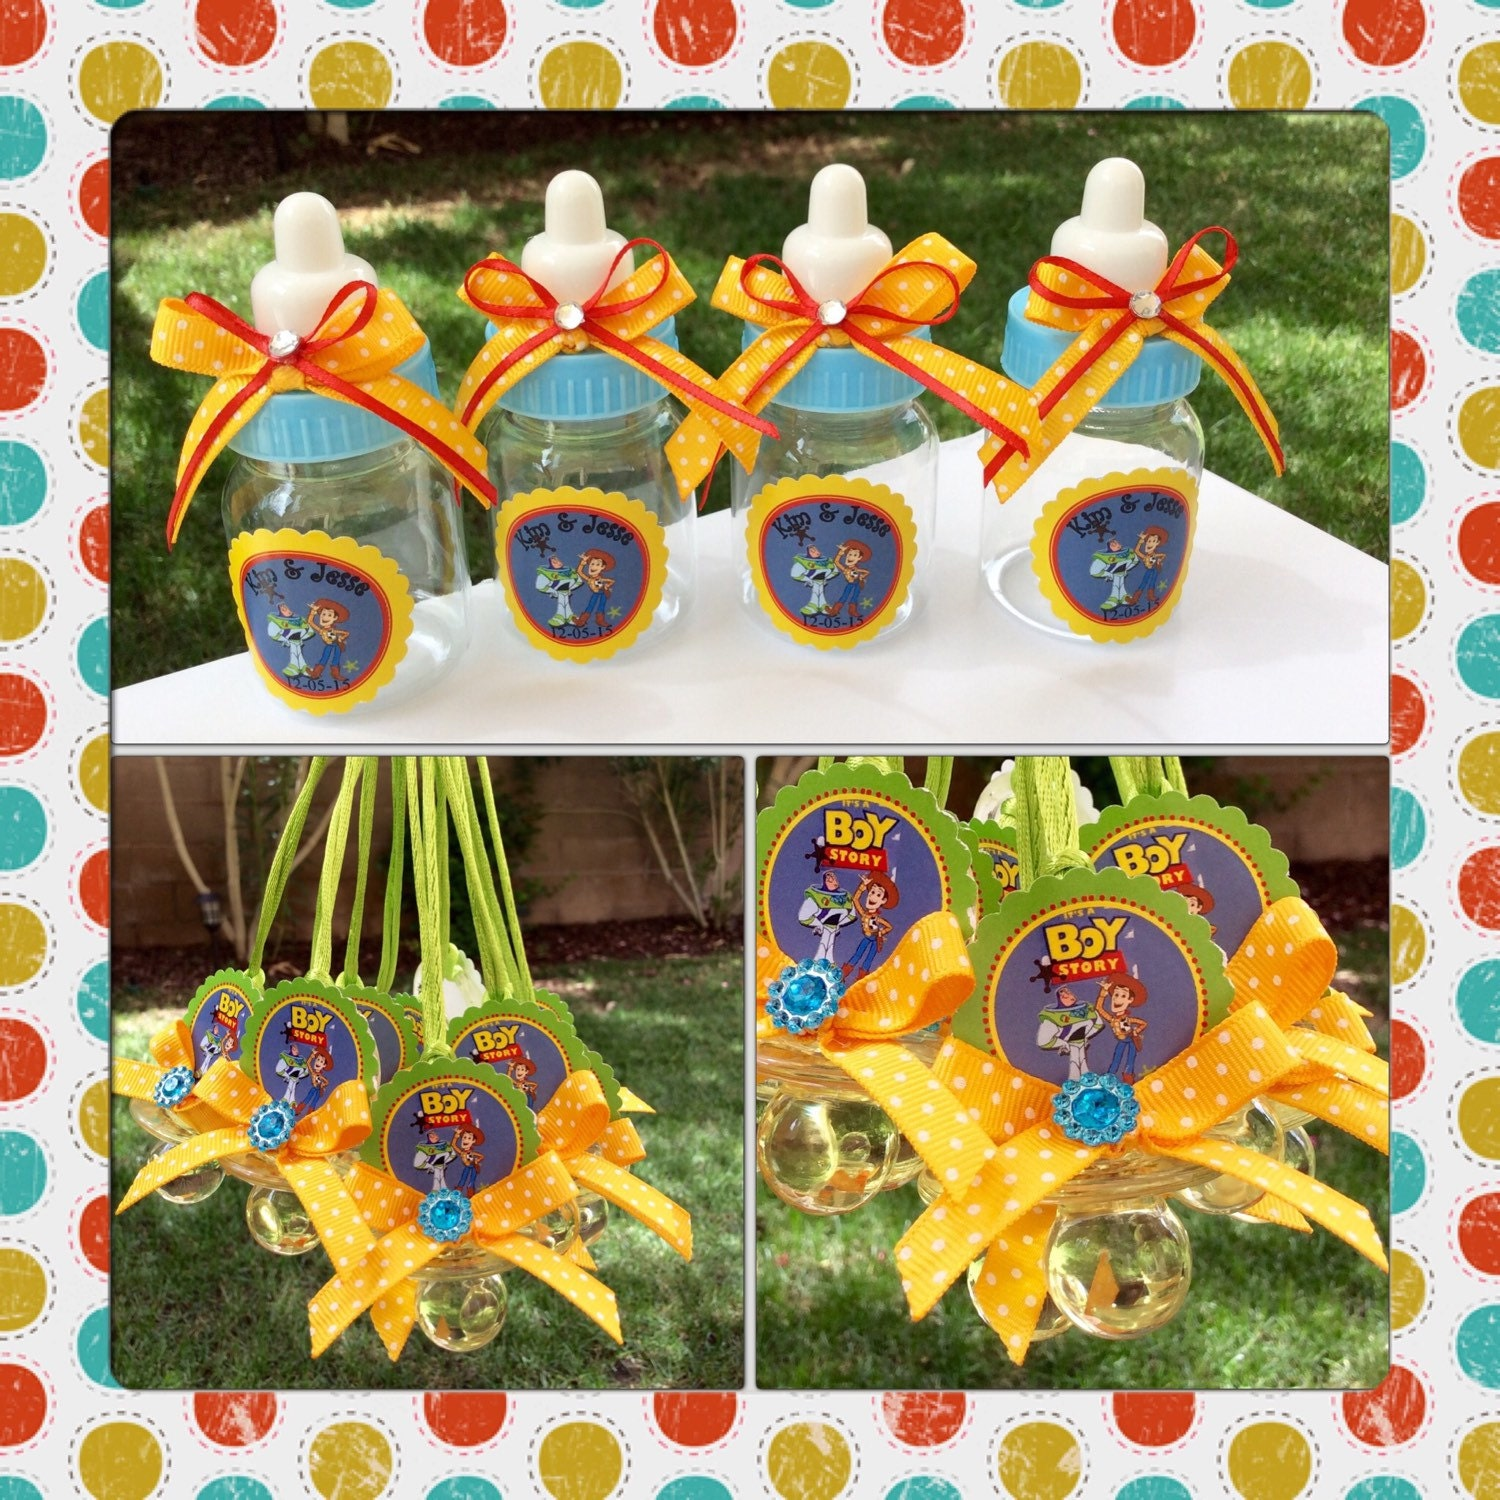 12 Disney toy story baby shower favors-toy story baby shower